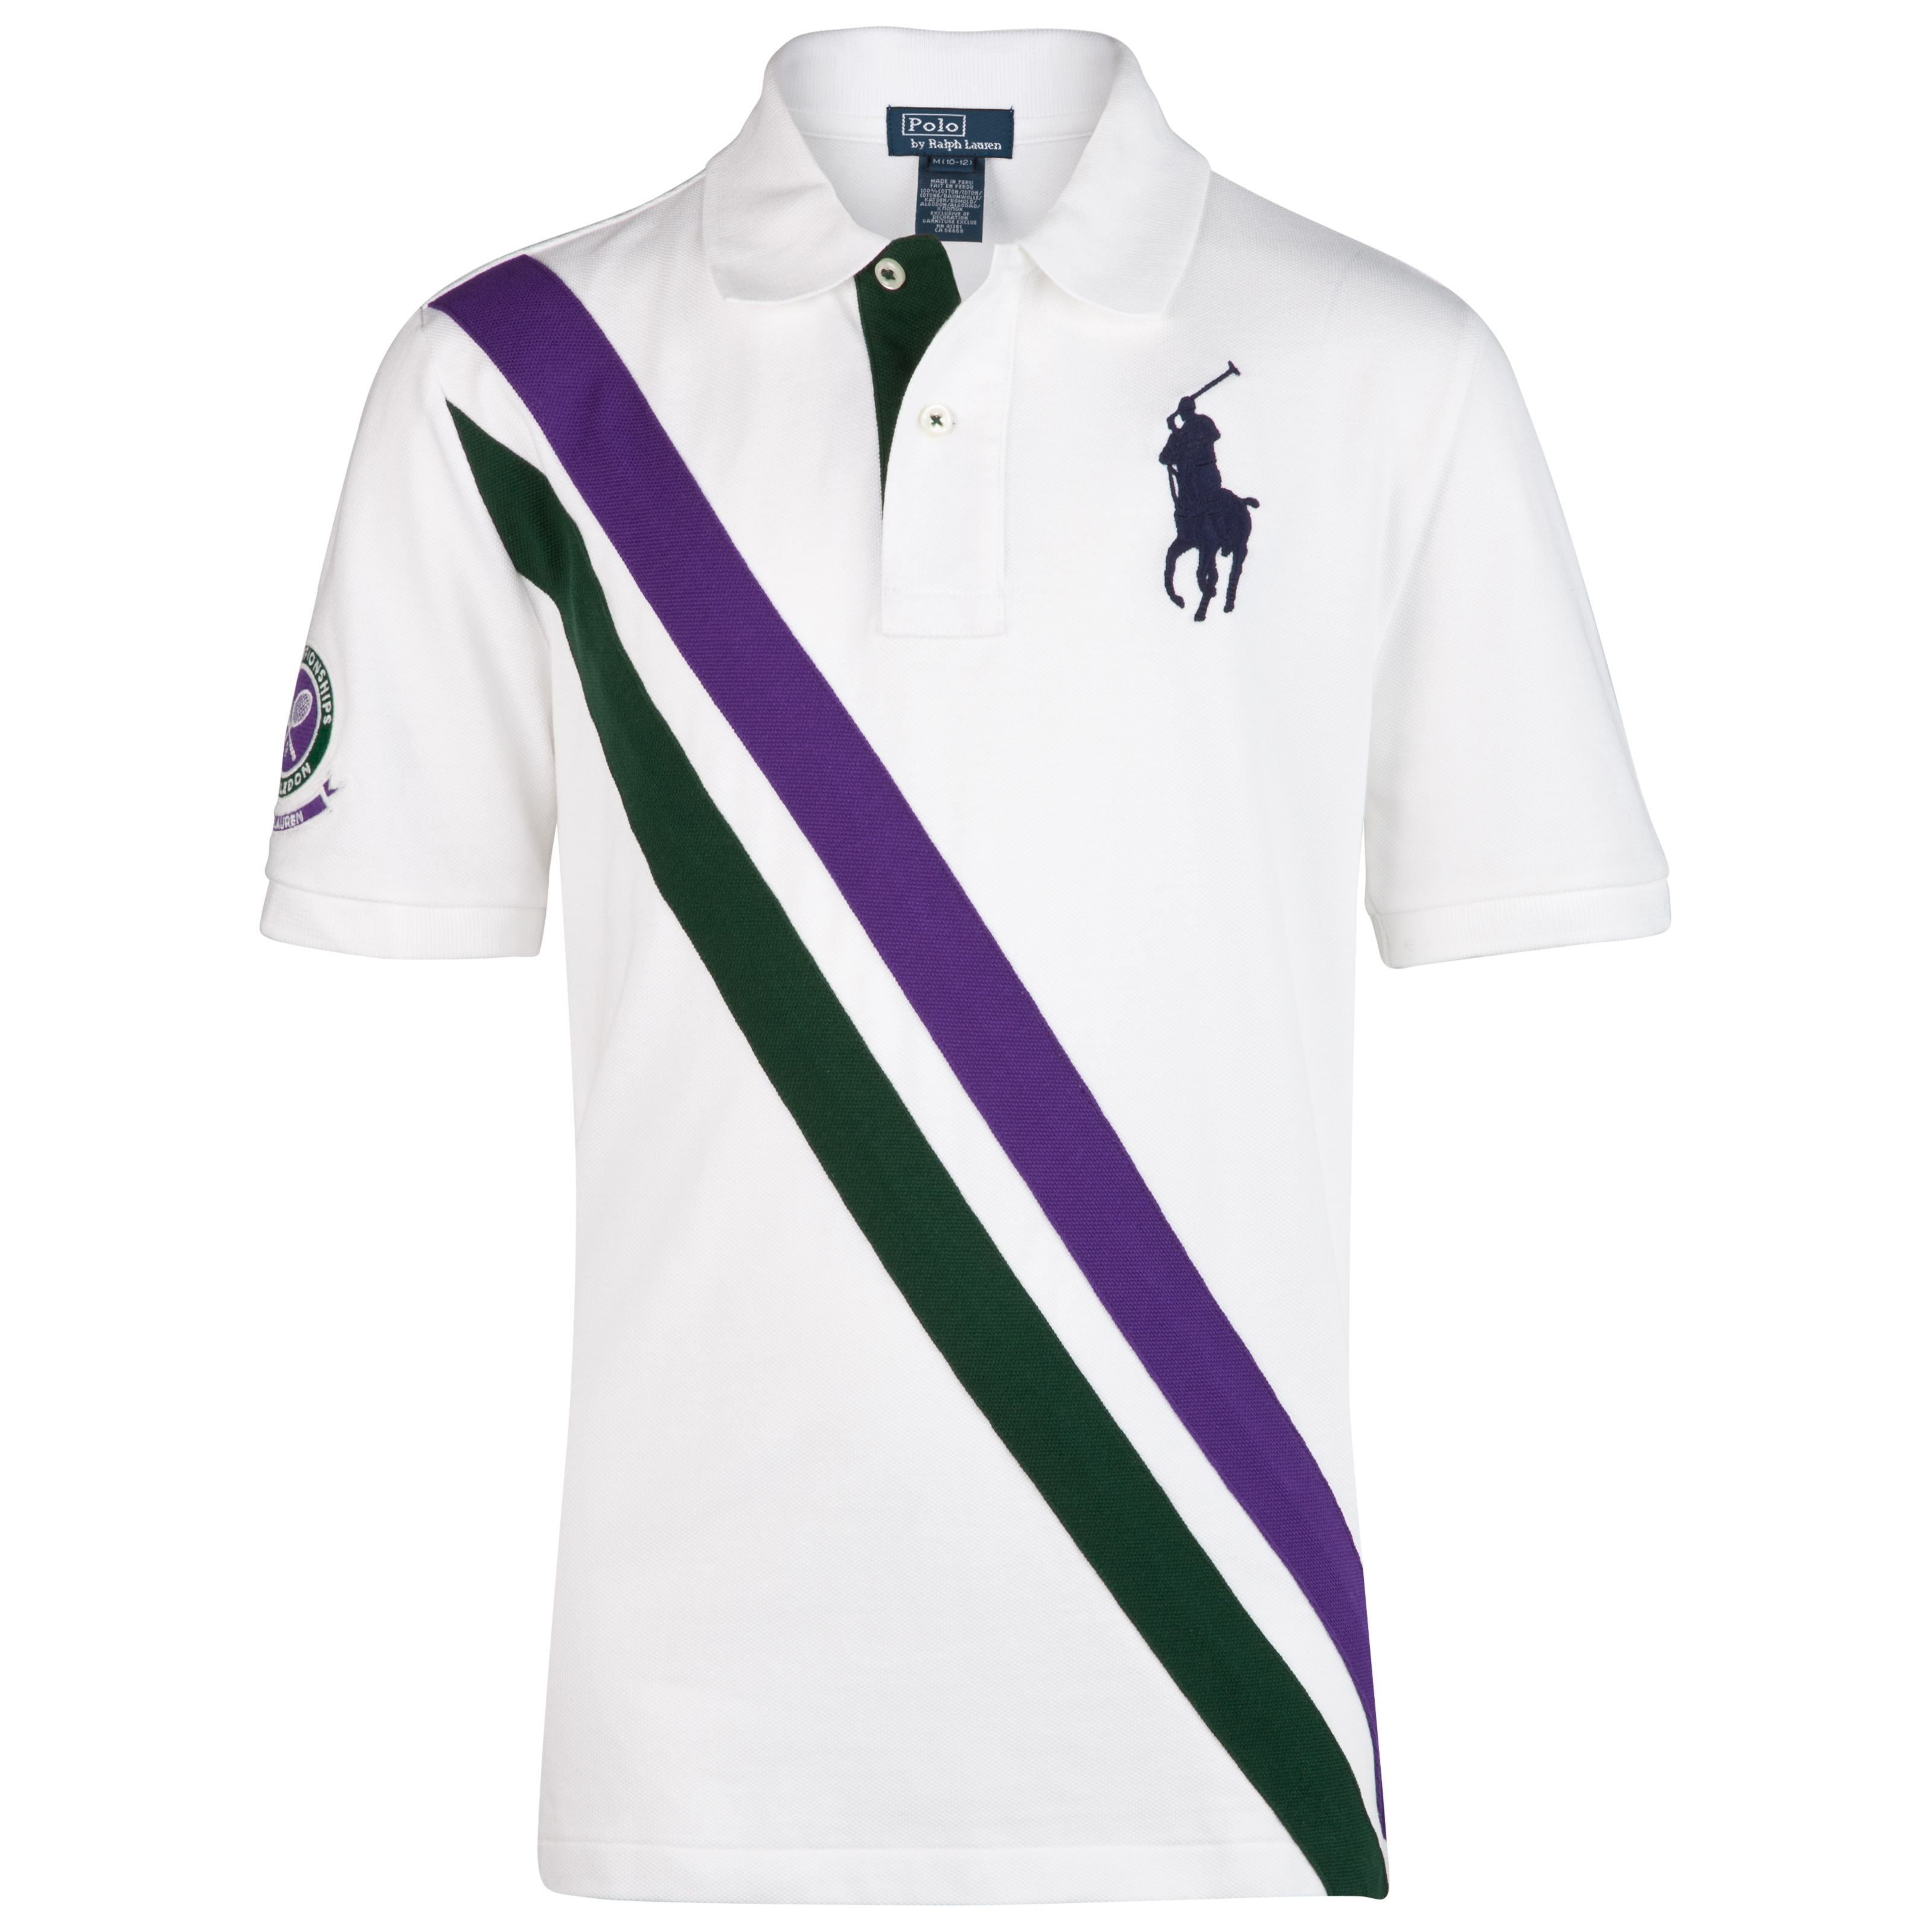 Polo Ralph Lauren Wimbledon Banner Mesh  Polo - Classic Oxford White - Infant Boys